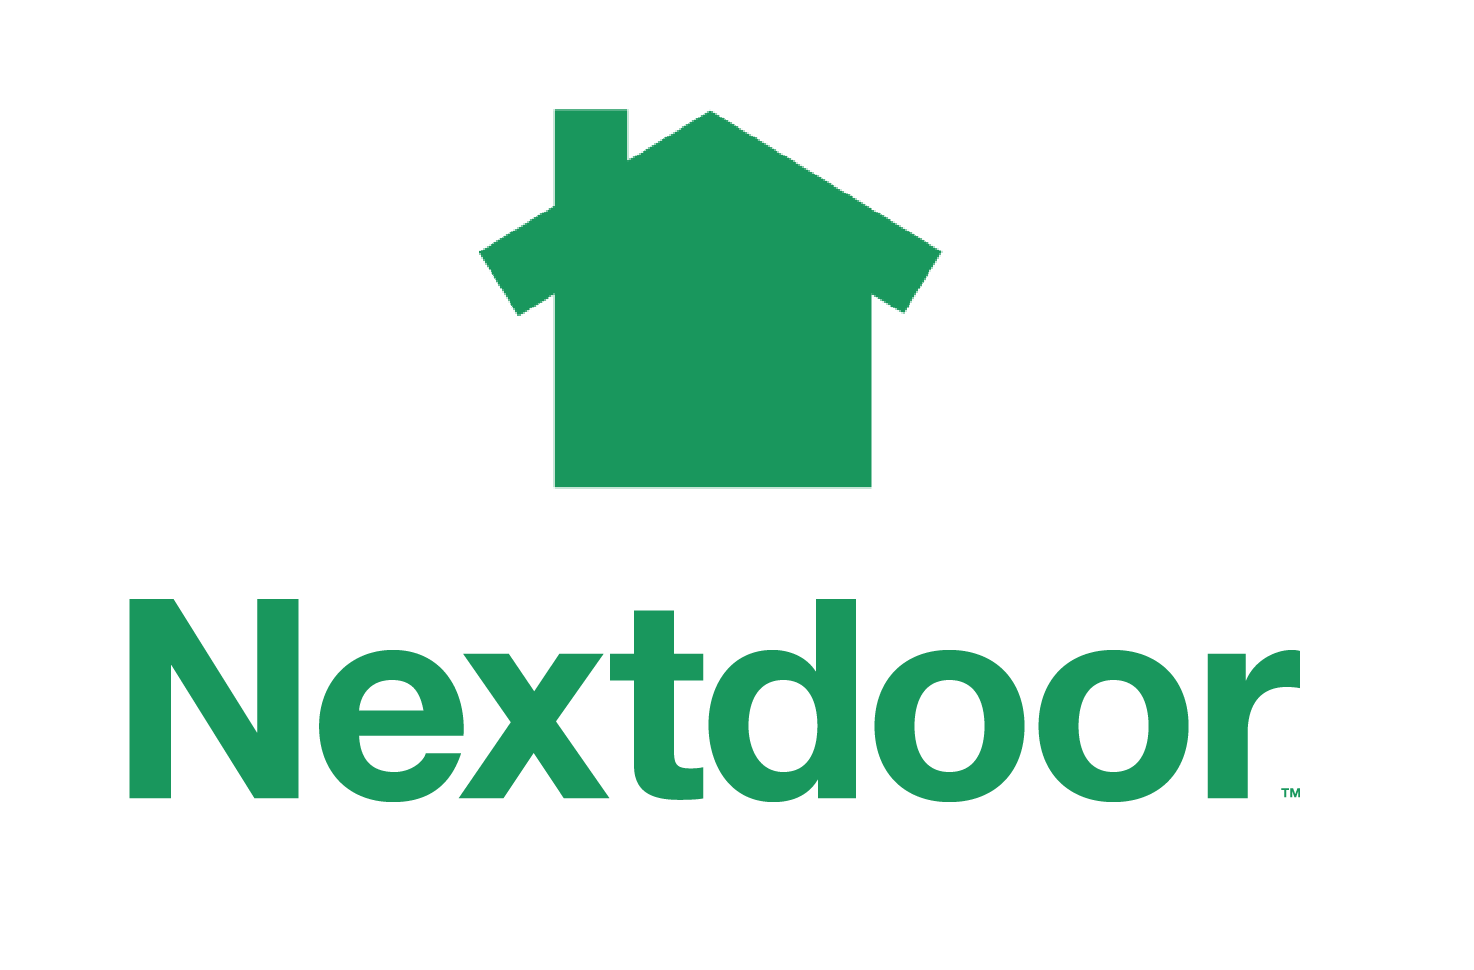 Captivating Things Are Happening In Albion And Sometimes It Is Good For Neighbors To  Talk With Each Other. There Are Discussions On The App Nextdoor About  Albionu0027s City ...